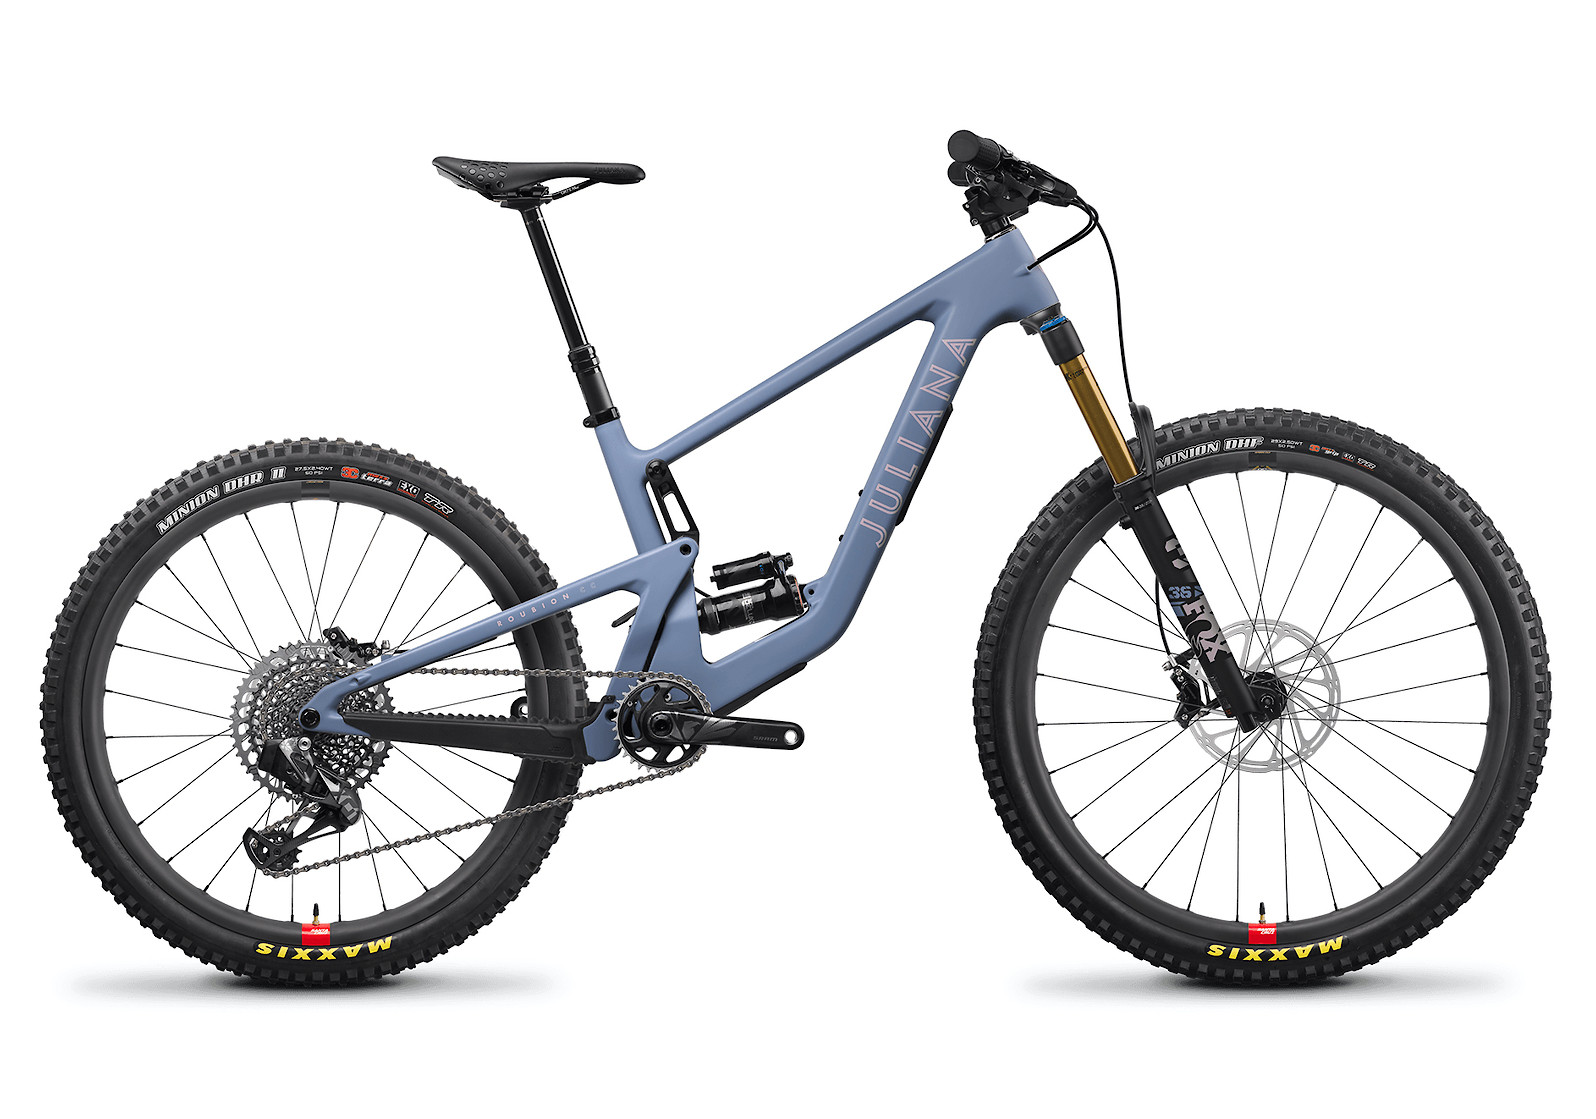 2022 Juliana Roubion MX Carbon CC X01 AXS with Reserve wheels